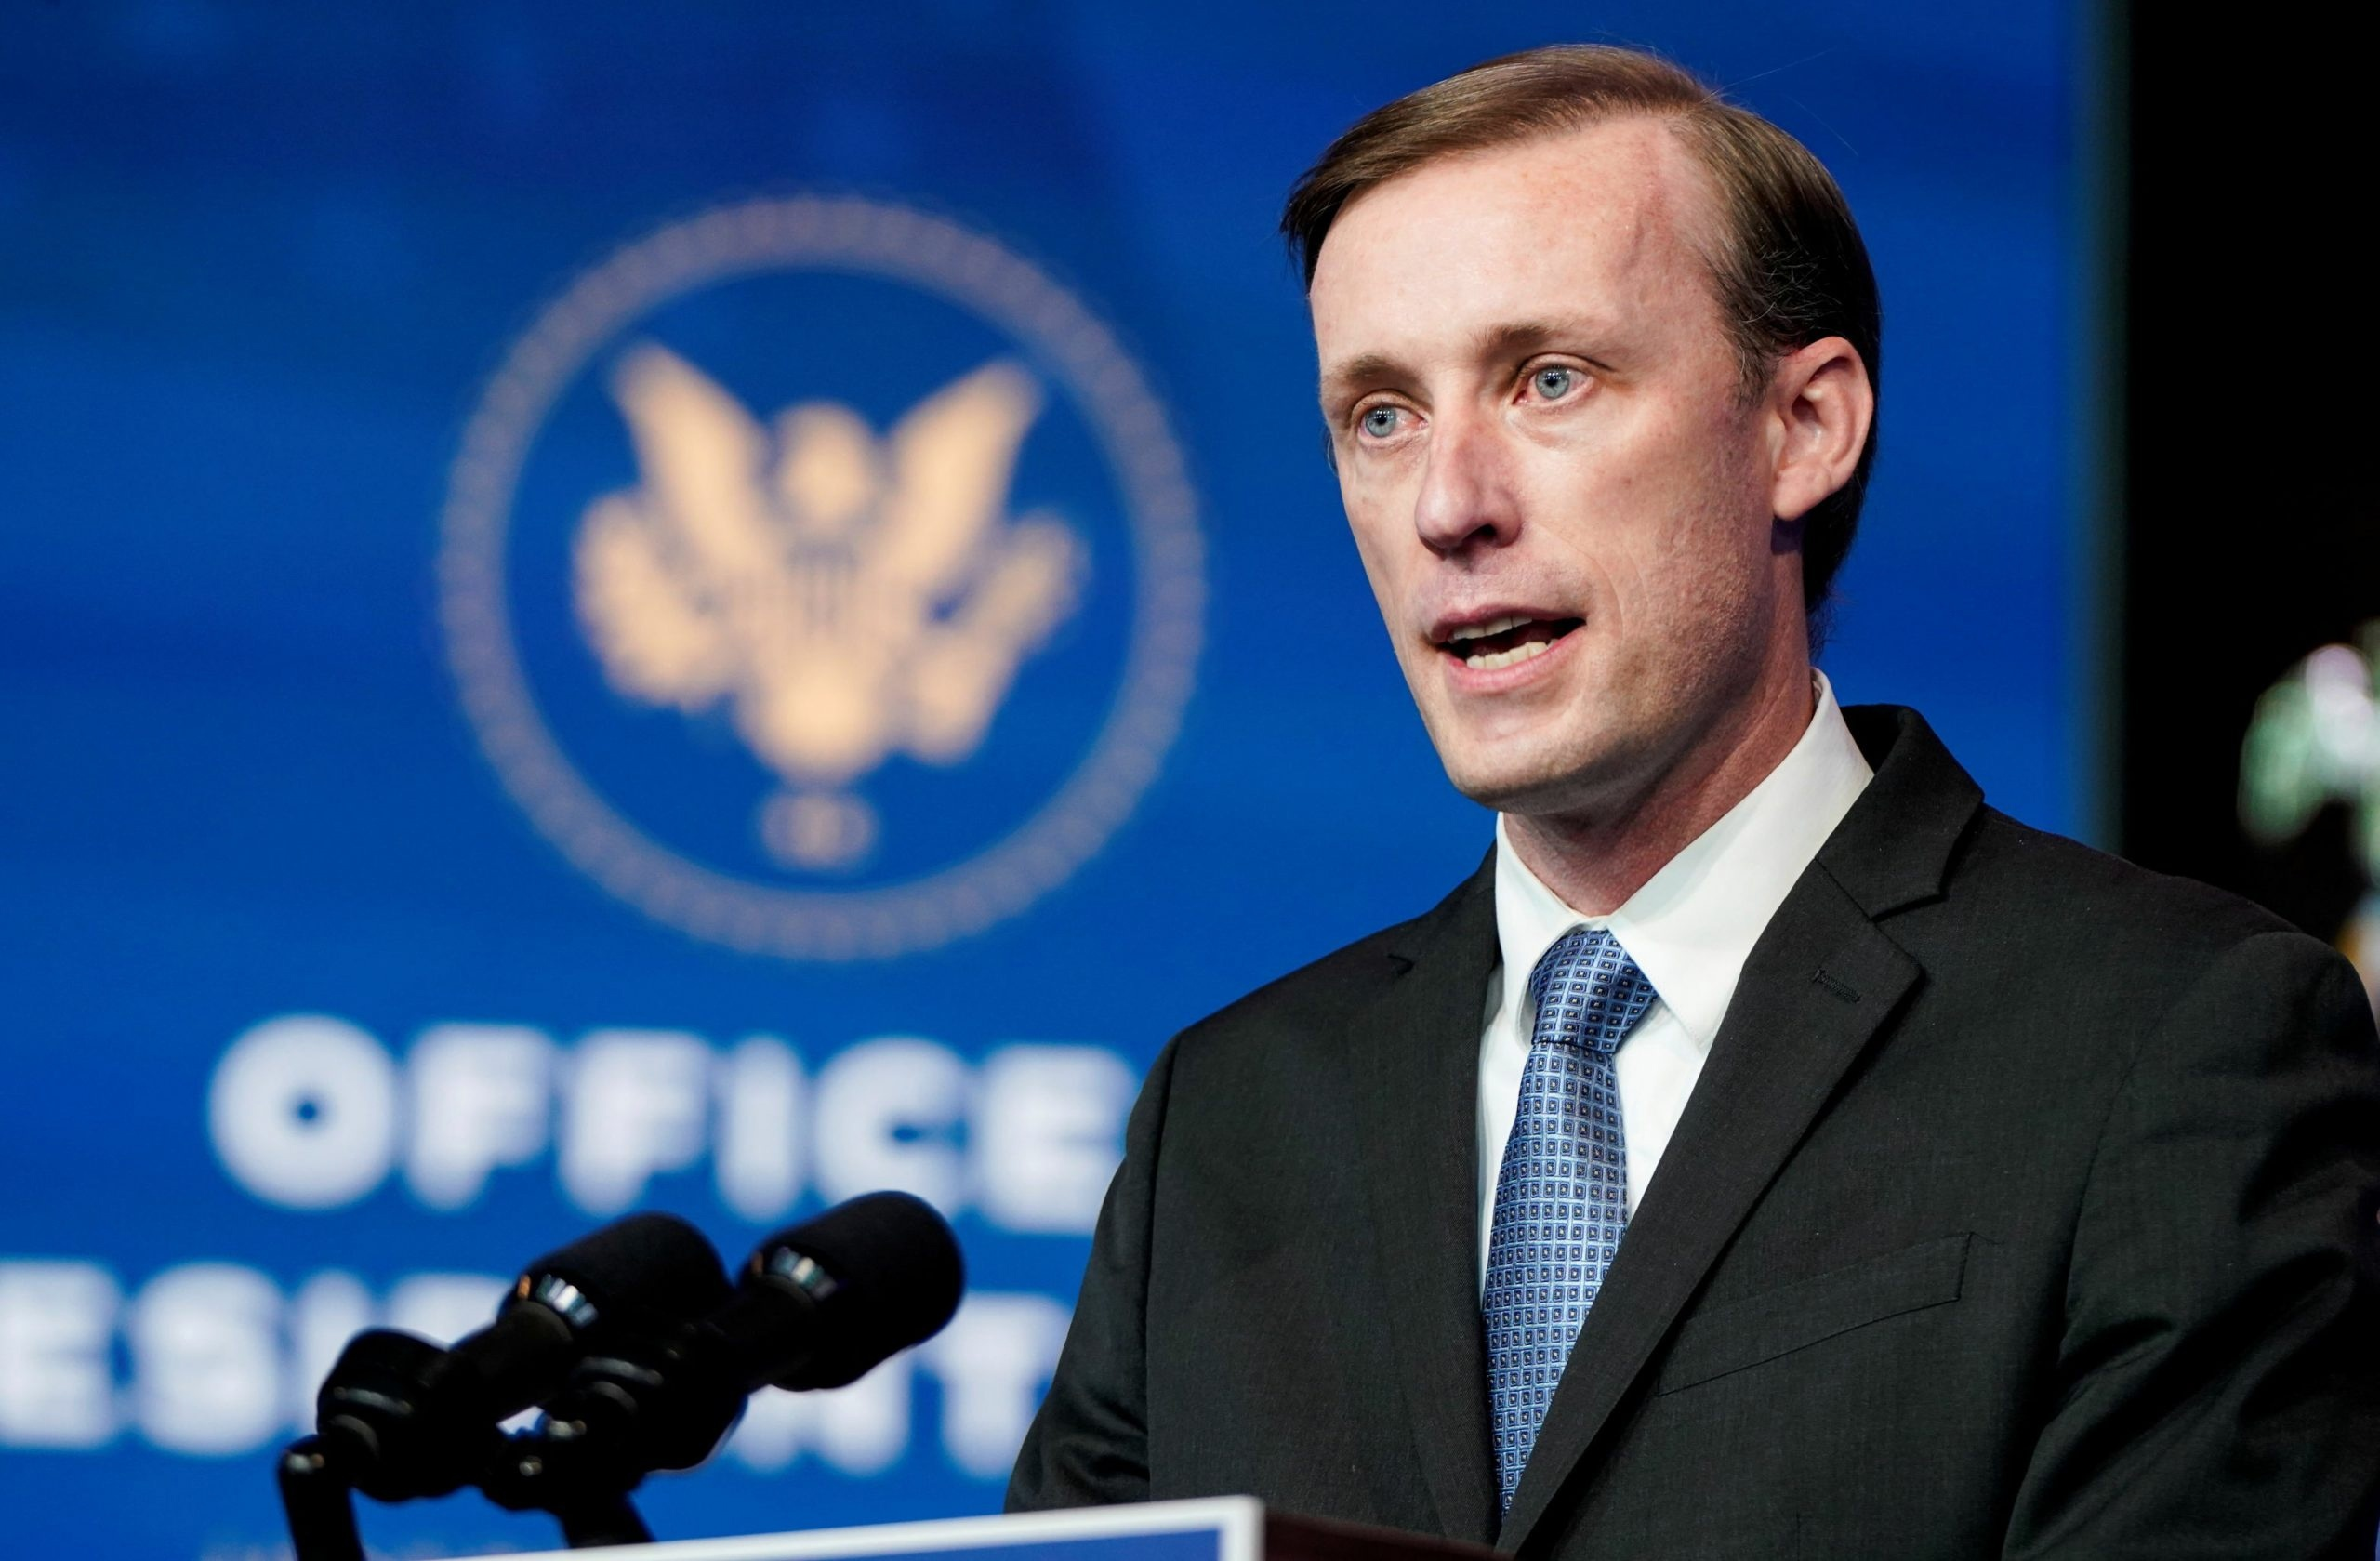 US calls summit with Russia important for mutual understanding between countries